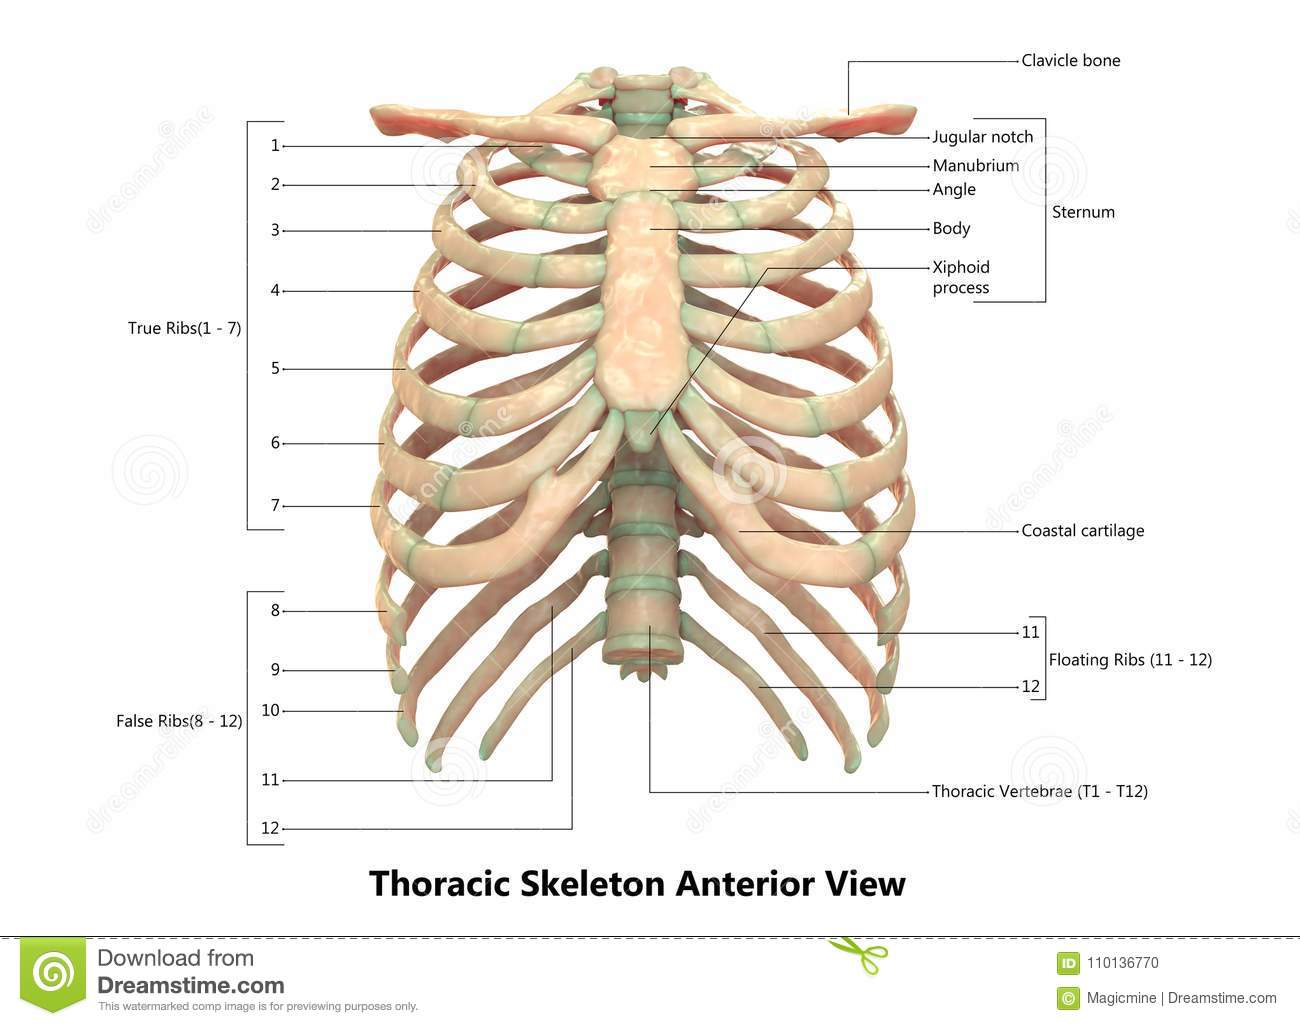 Human Body Skeleton System Thoracic Skeleton Anterior View Anatomy